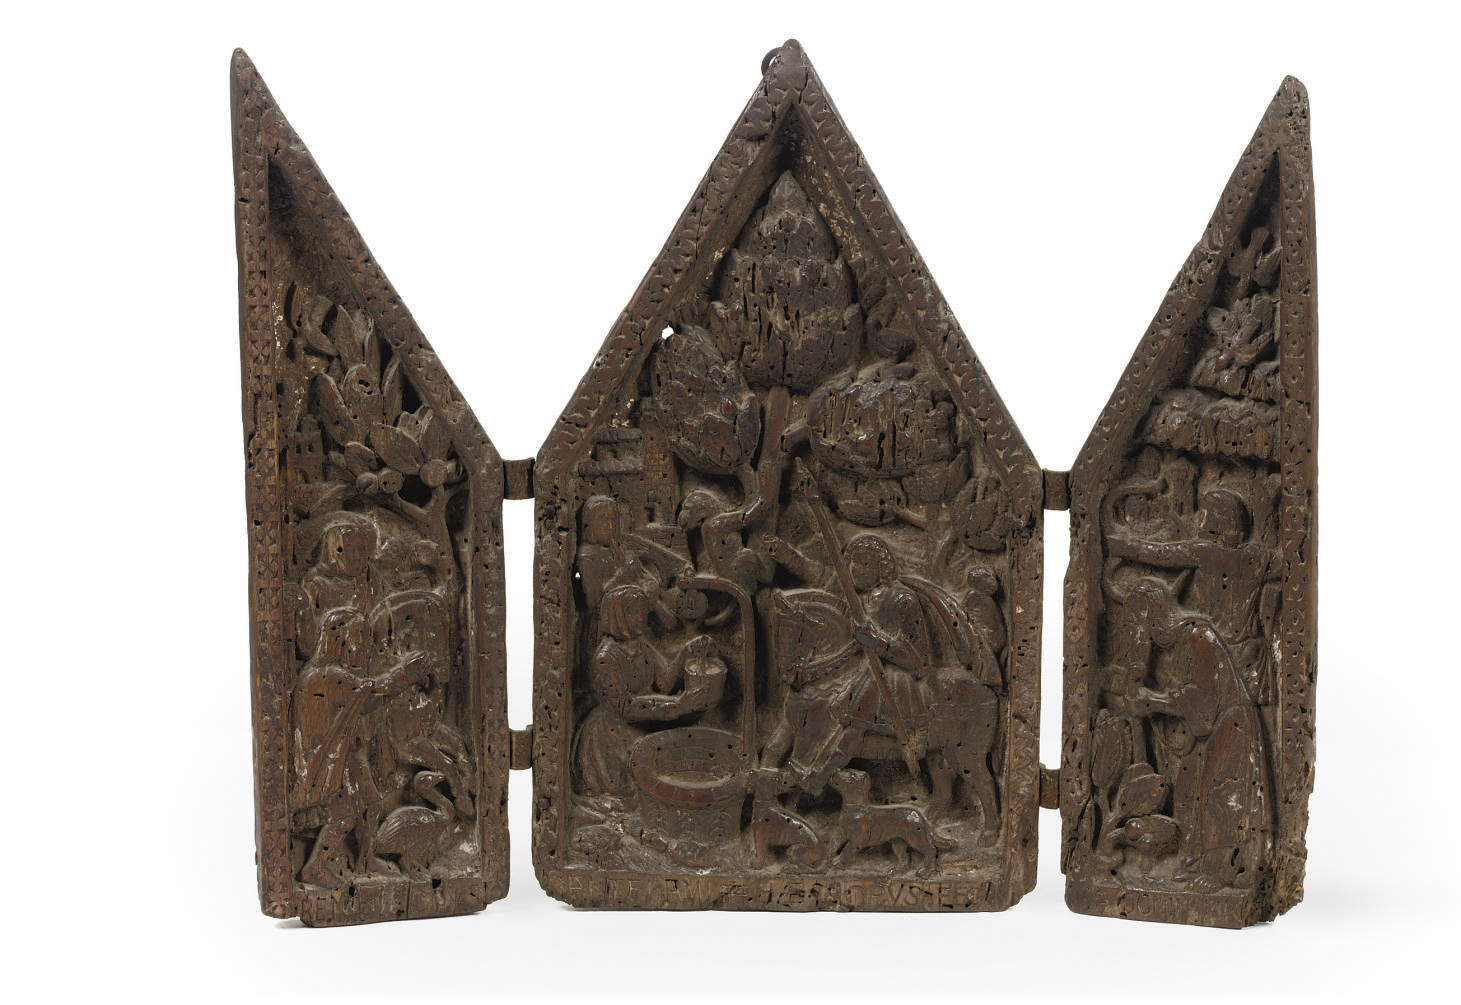 A CARVED WOOD RELIEF TRYPTYCH